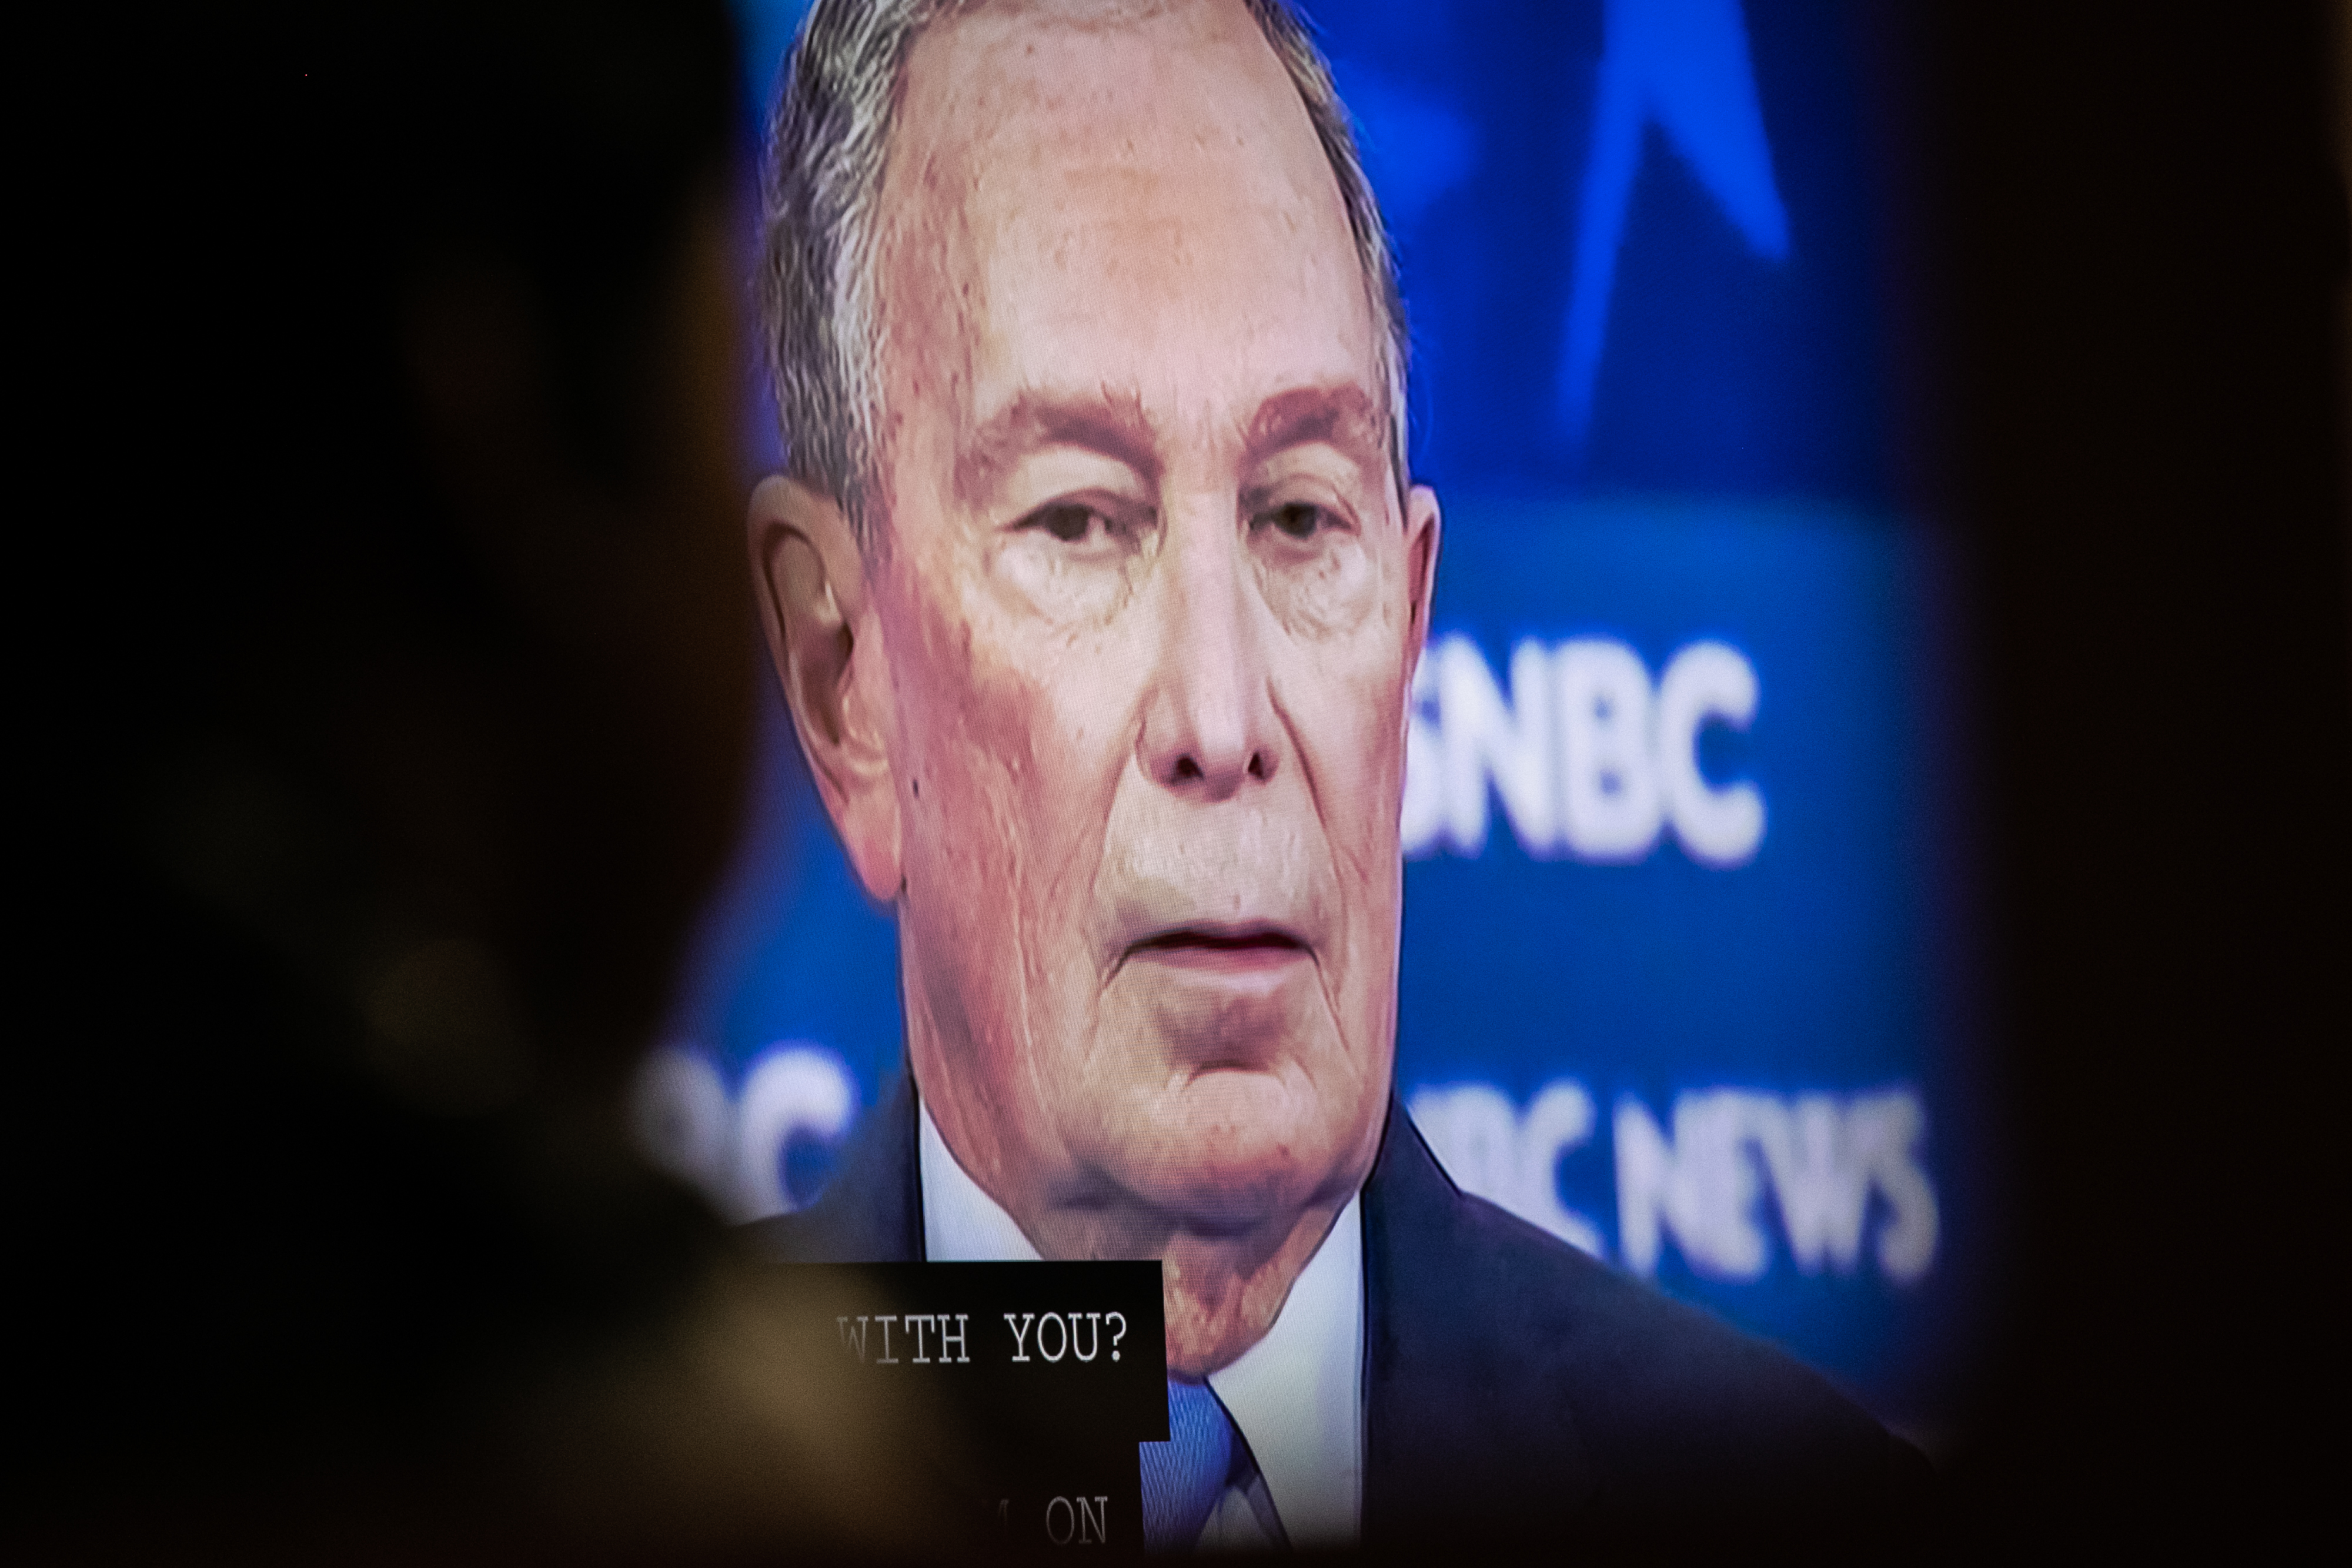 Democratic presidential candidate former New York City Mayor Mike Bloomberg is shown on a screen during a debate watch party at the candidate's field office on Wednesday in the Brooklyn borough of New York City